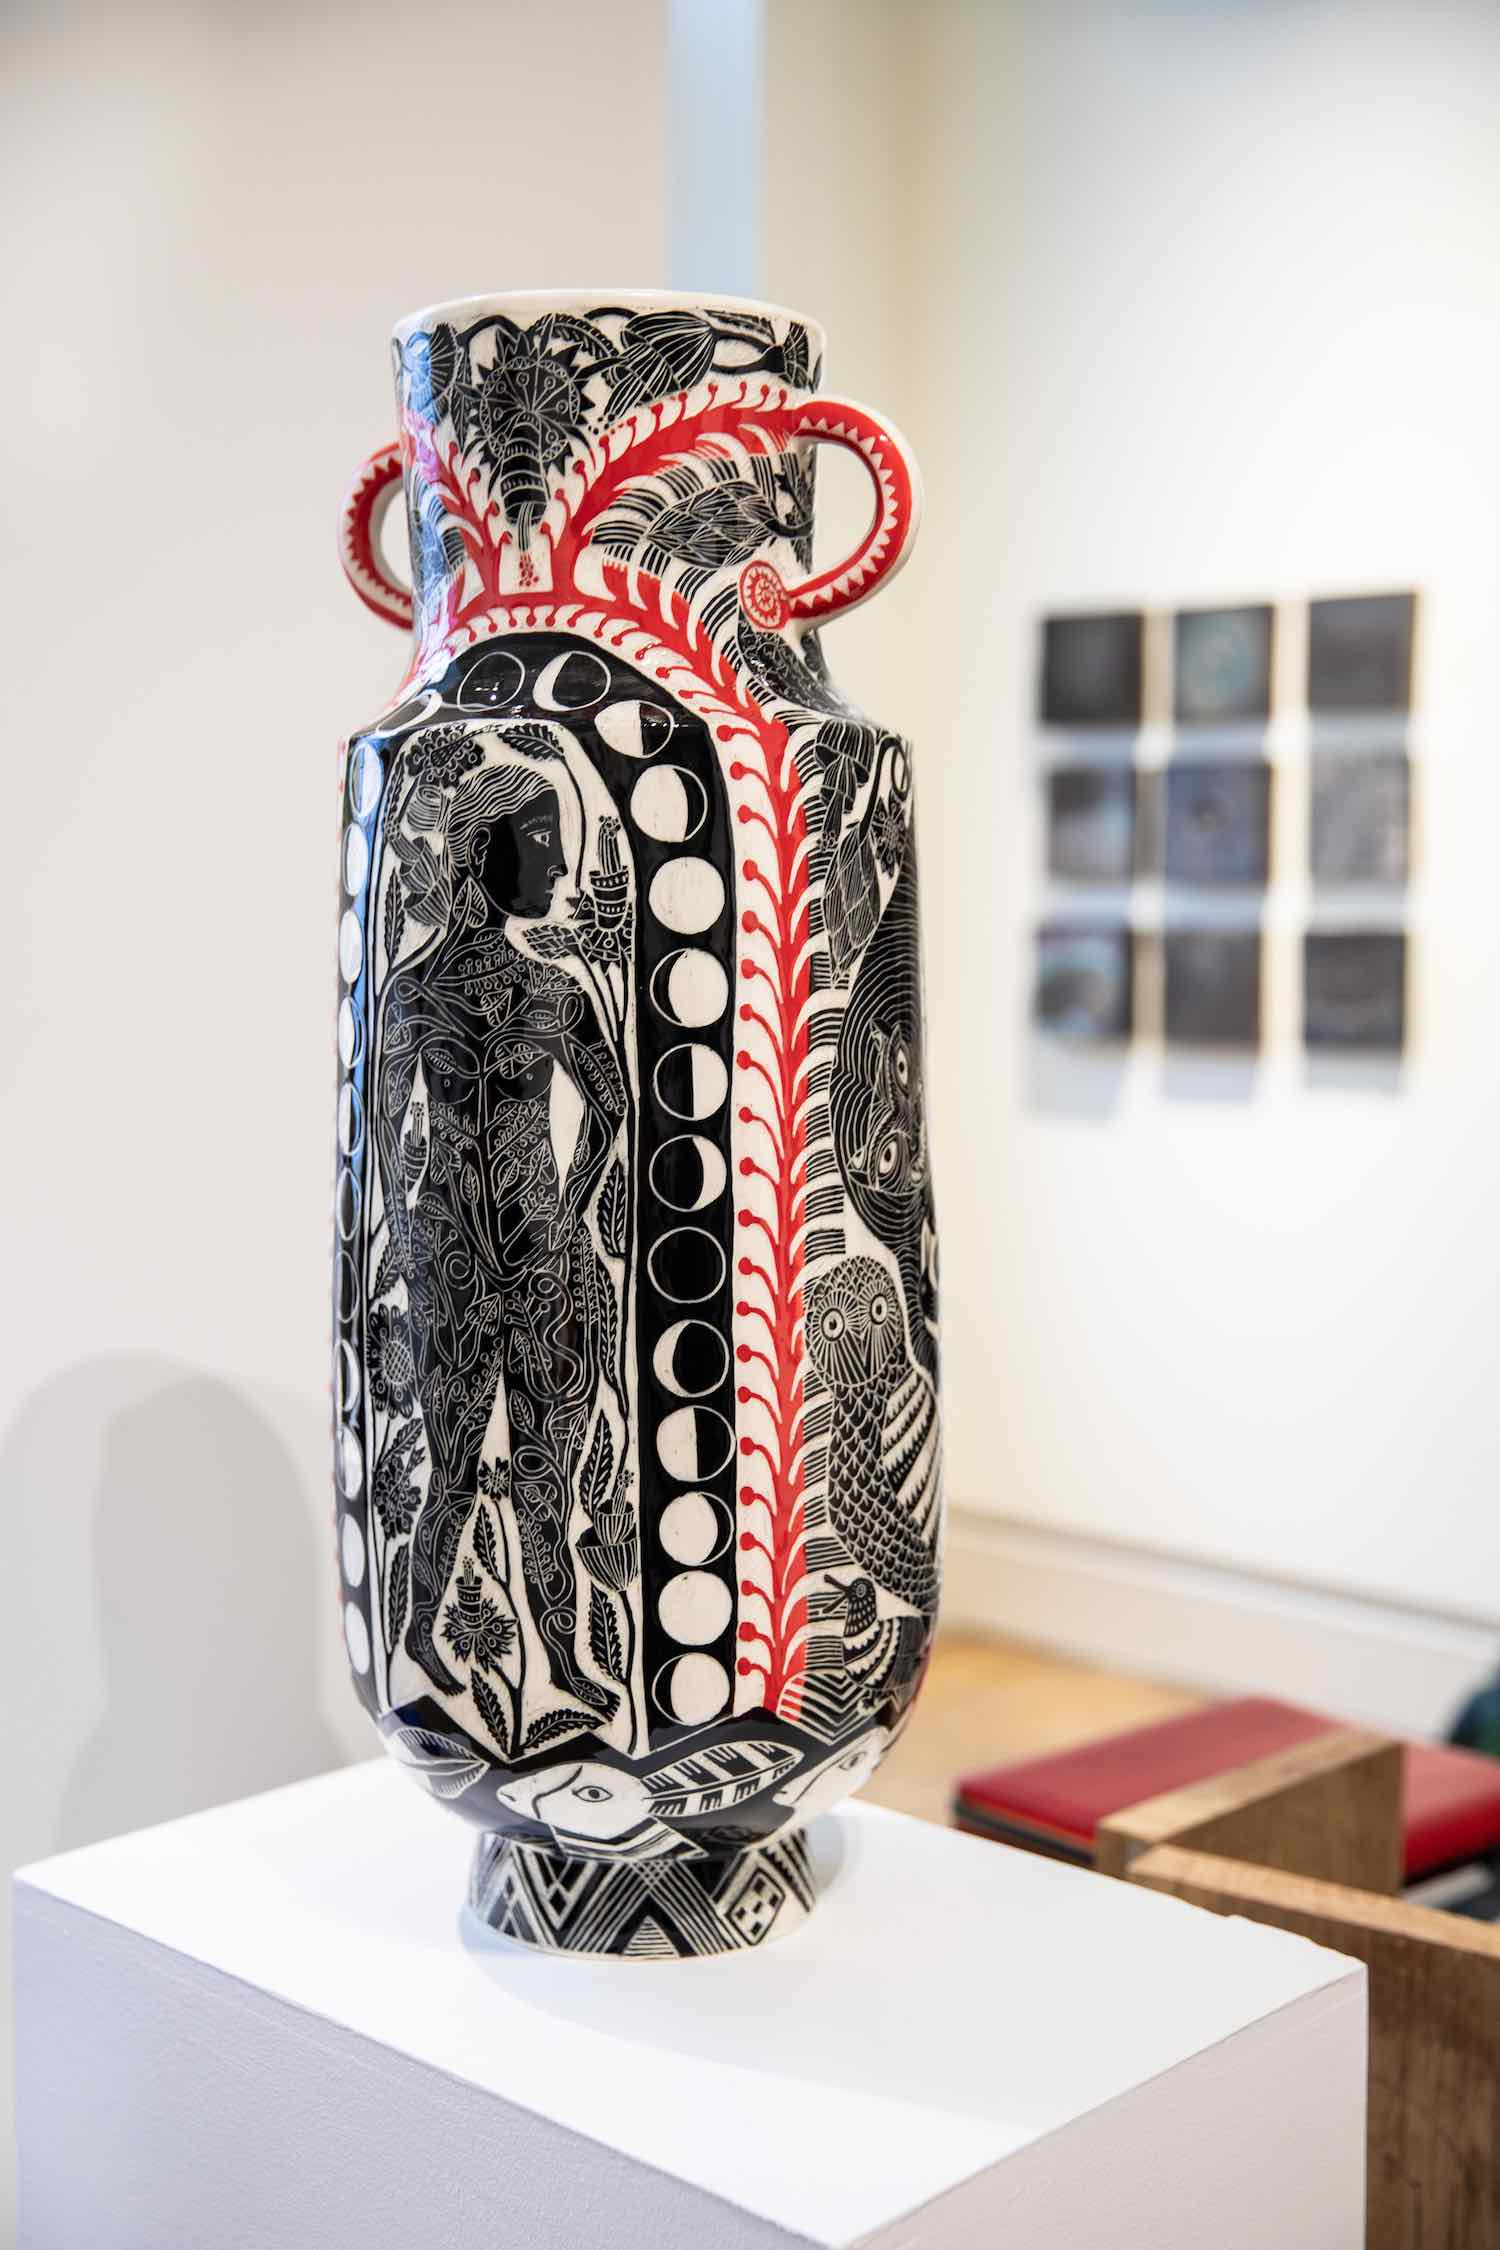 Vase by British ceramics artist Vicky Lindo - Winner of the 2019 British Ceramics Biennial (BCB) Headlining Exhibition Award - Photo by Iona Wolff; courtesy of Collect2020.